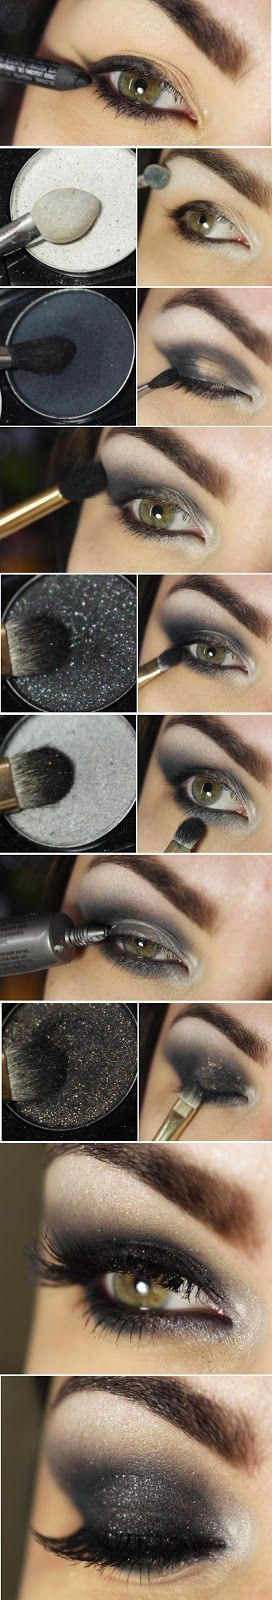 Gorgeous Makeup Tutorials Wedding Party look Special for Women's